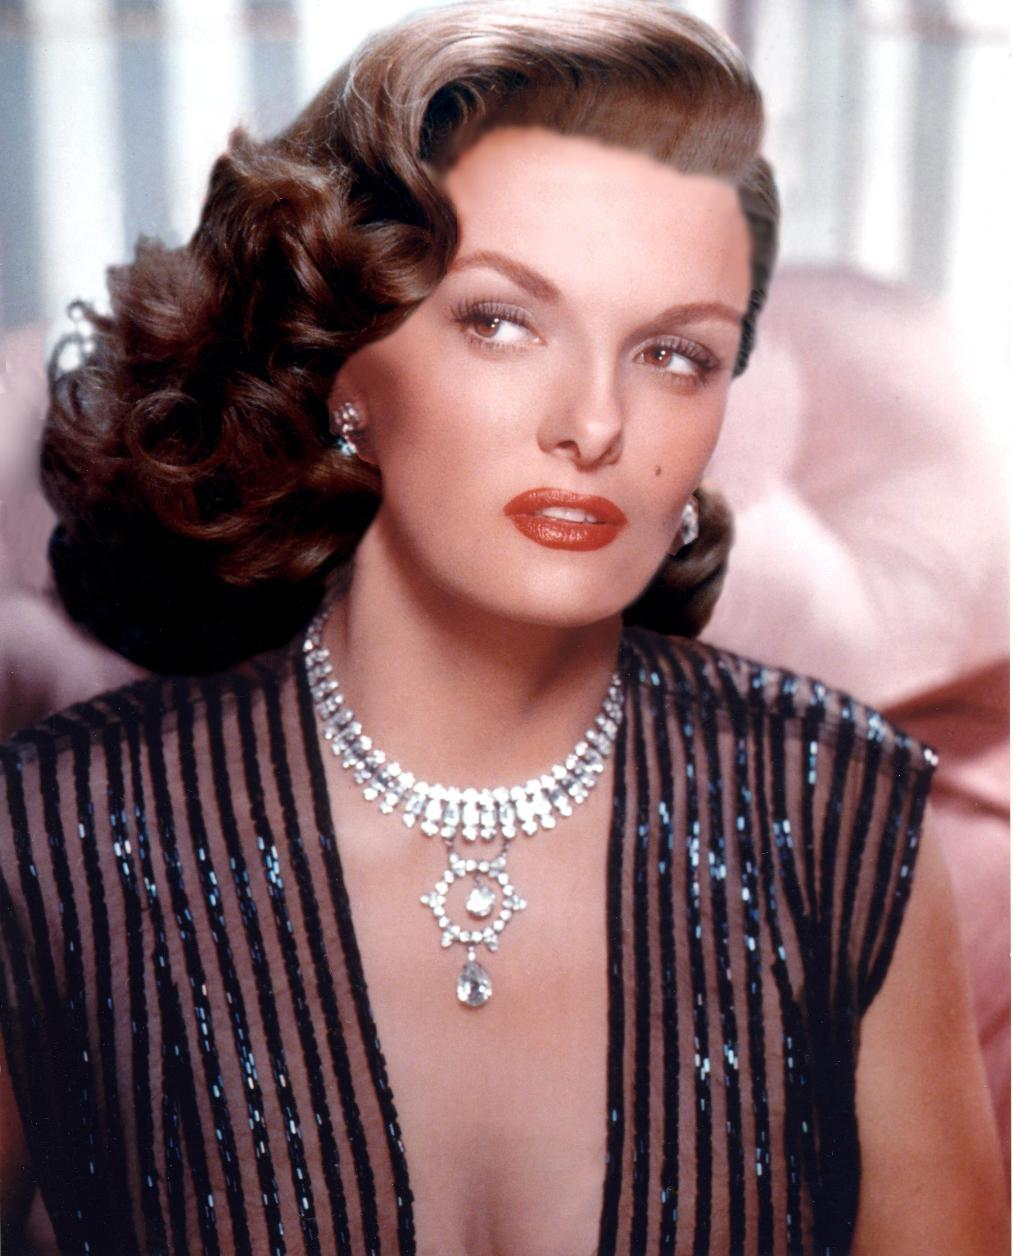 Jane Russell to receive Lifetime Achievement in Acting Award from Fort Lauderdale International Film Festival